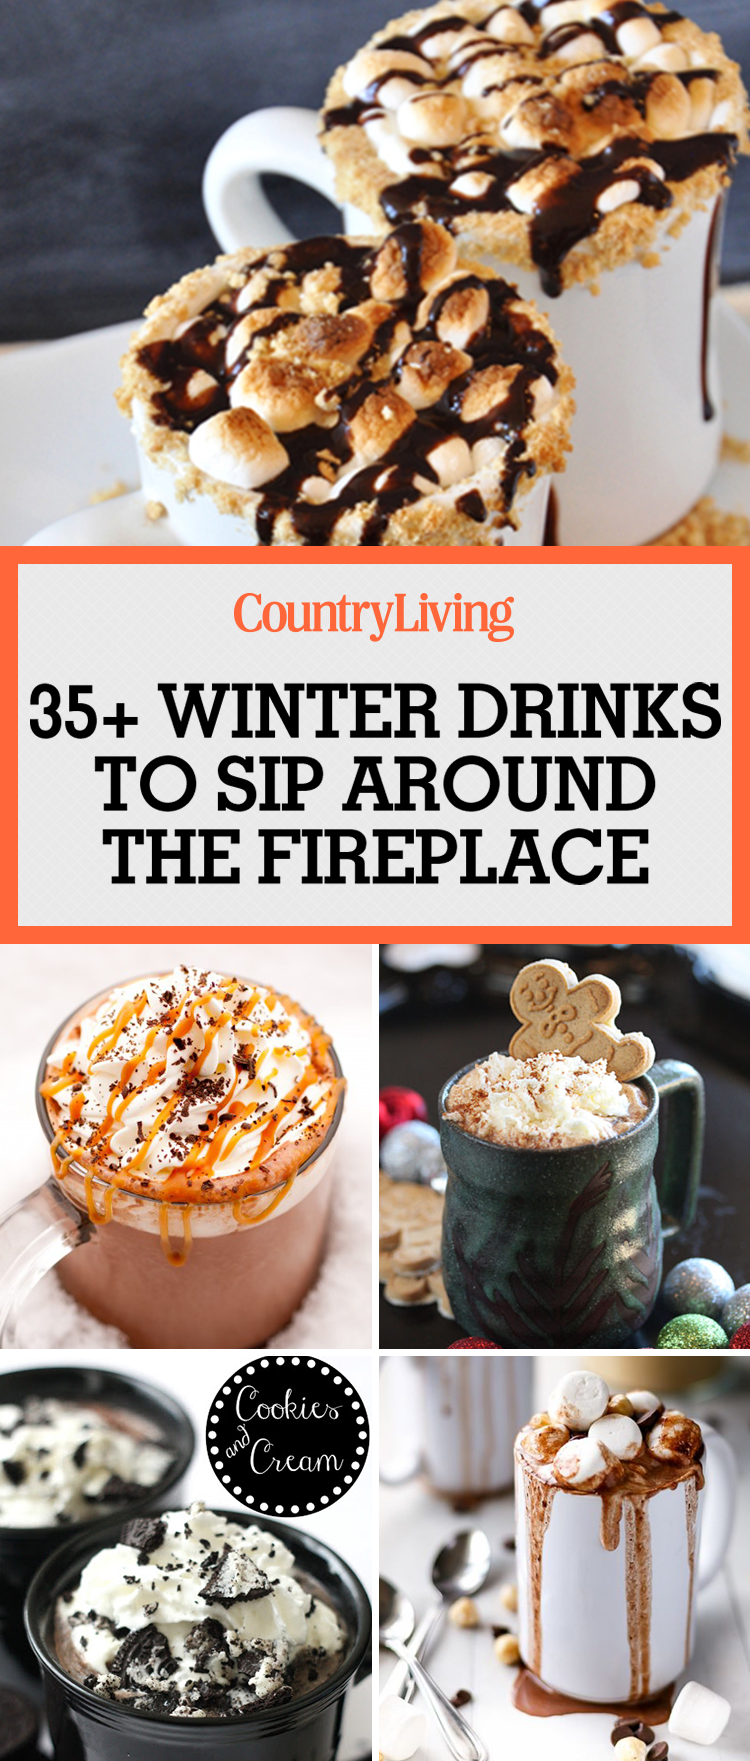 40+ Winter Drinks To Sip Around The Fireplace This